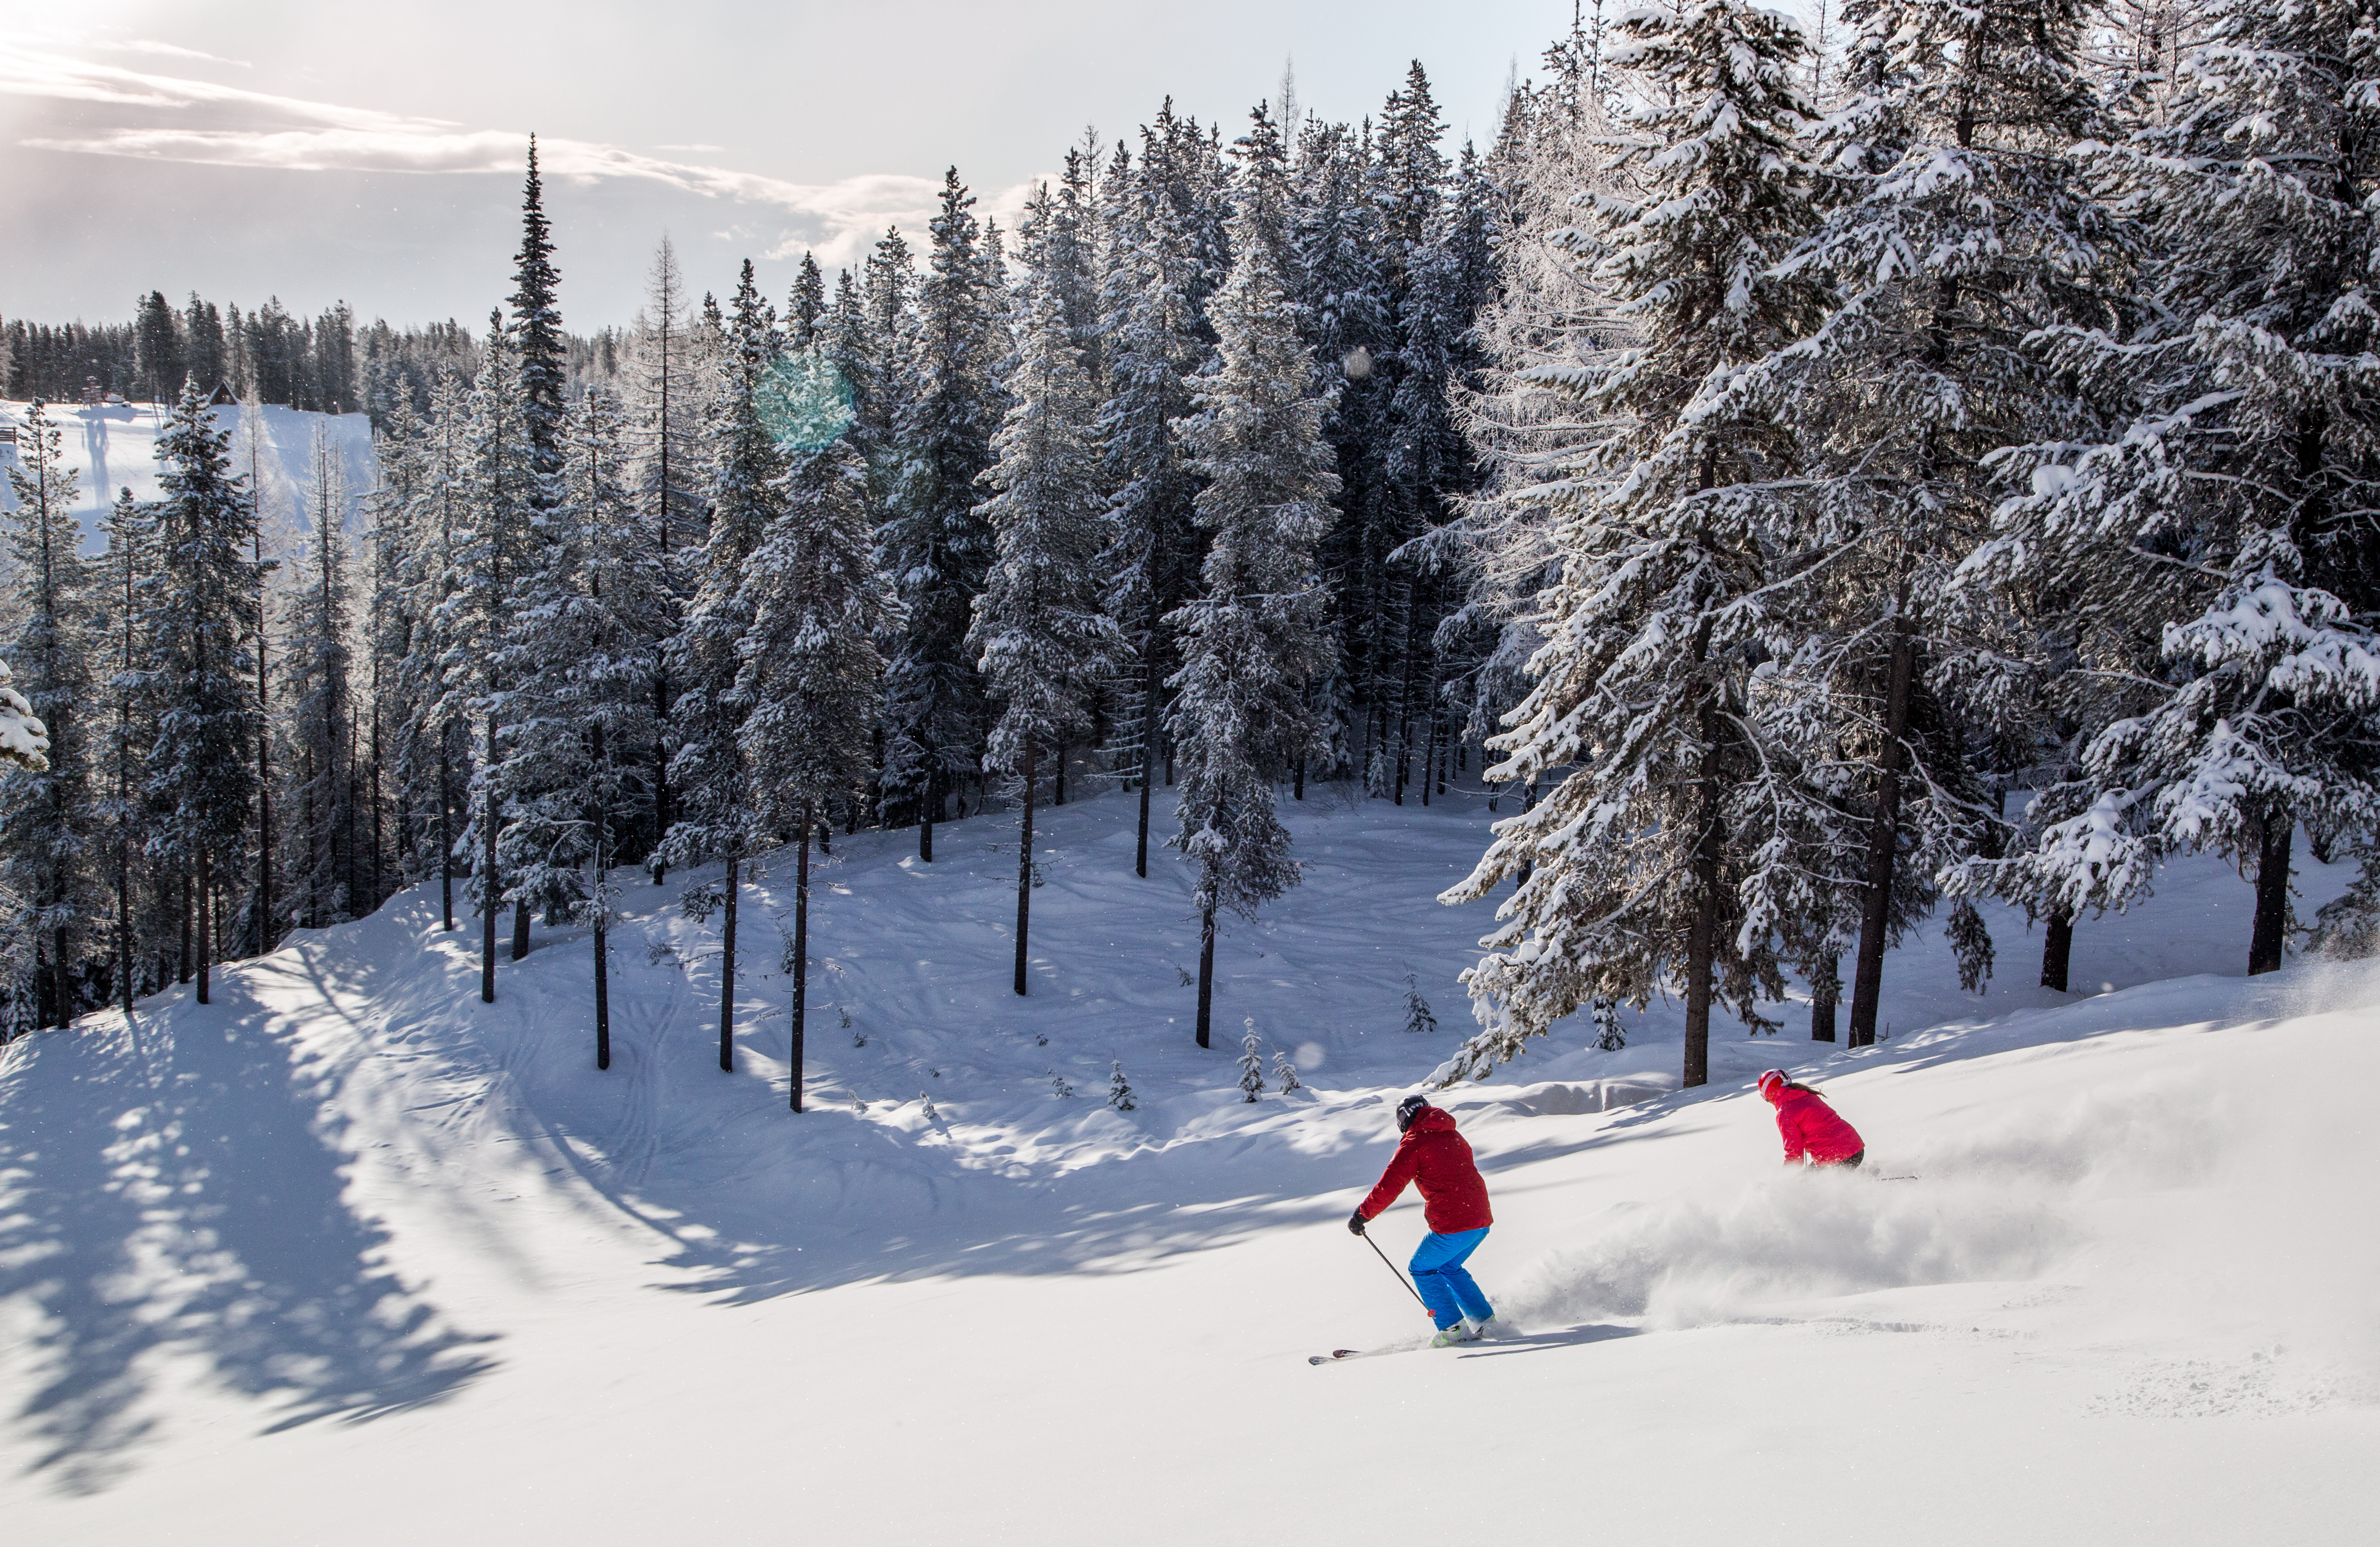 american values in the land of canada – kimberley alpine resort